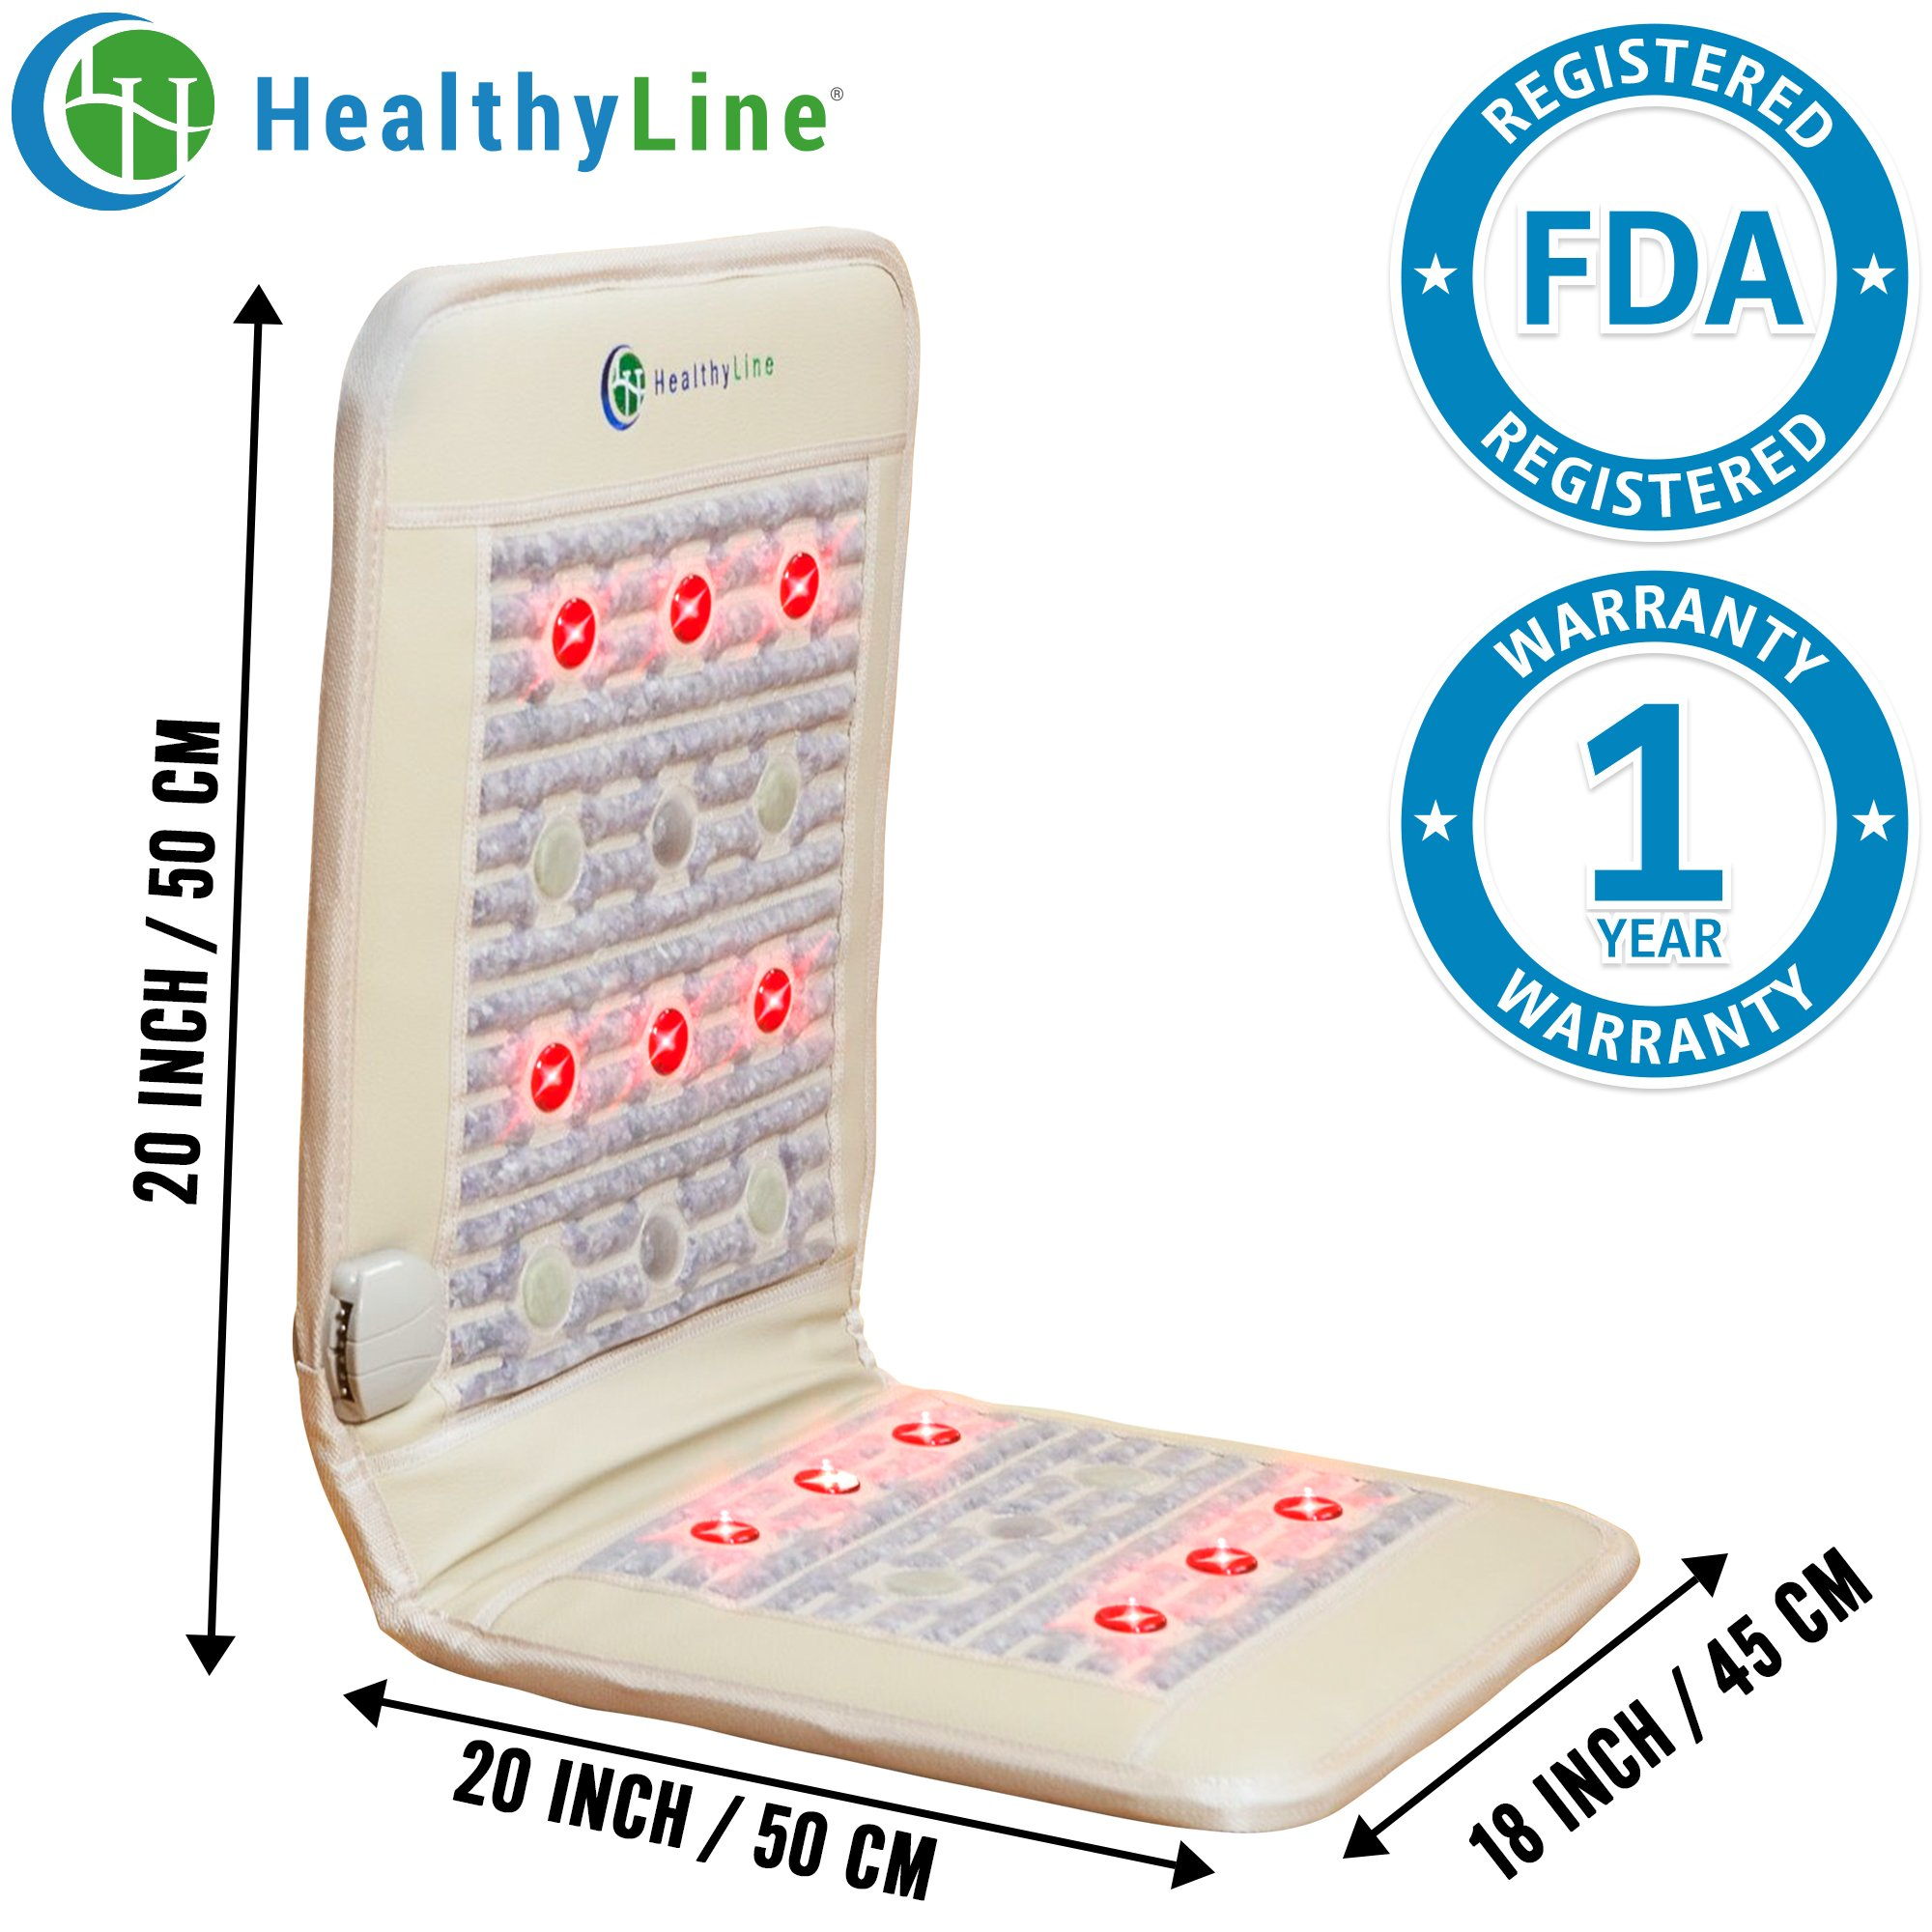 HealthyLine Infrared Heating Pad (Firm)|2 PEMF Coils, 12 Photon LEDs, Natural Amethyst, Jade & Tourmaline Ceramic (Medium) 40″ x 18″ |Relieve Pain, Sore Muscles, Arthritis and Injury Recovery